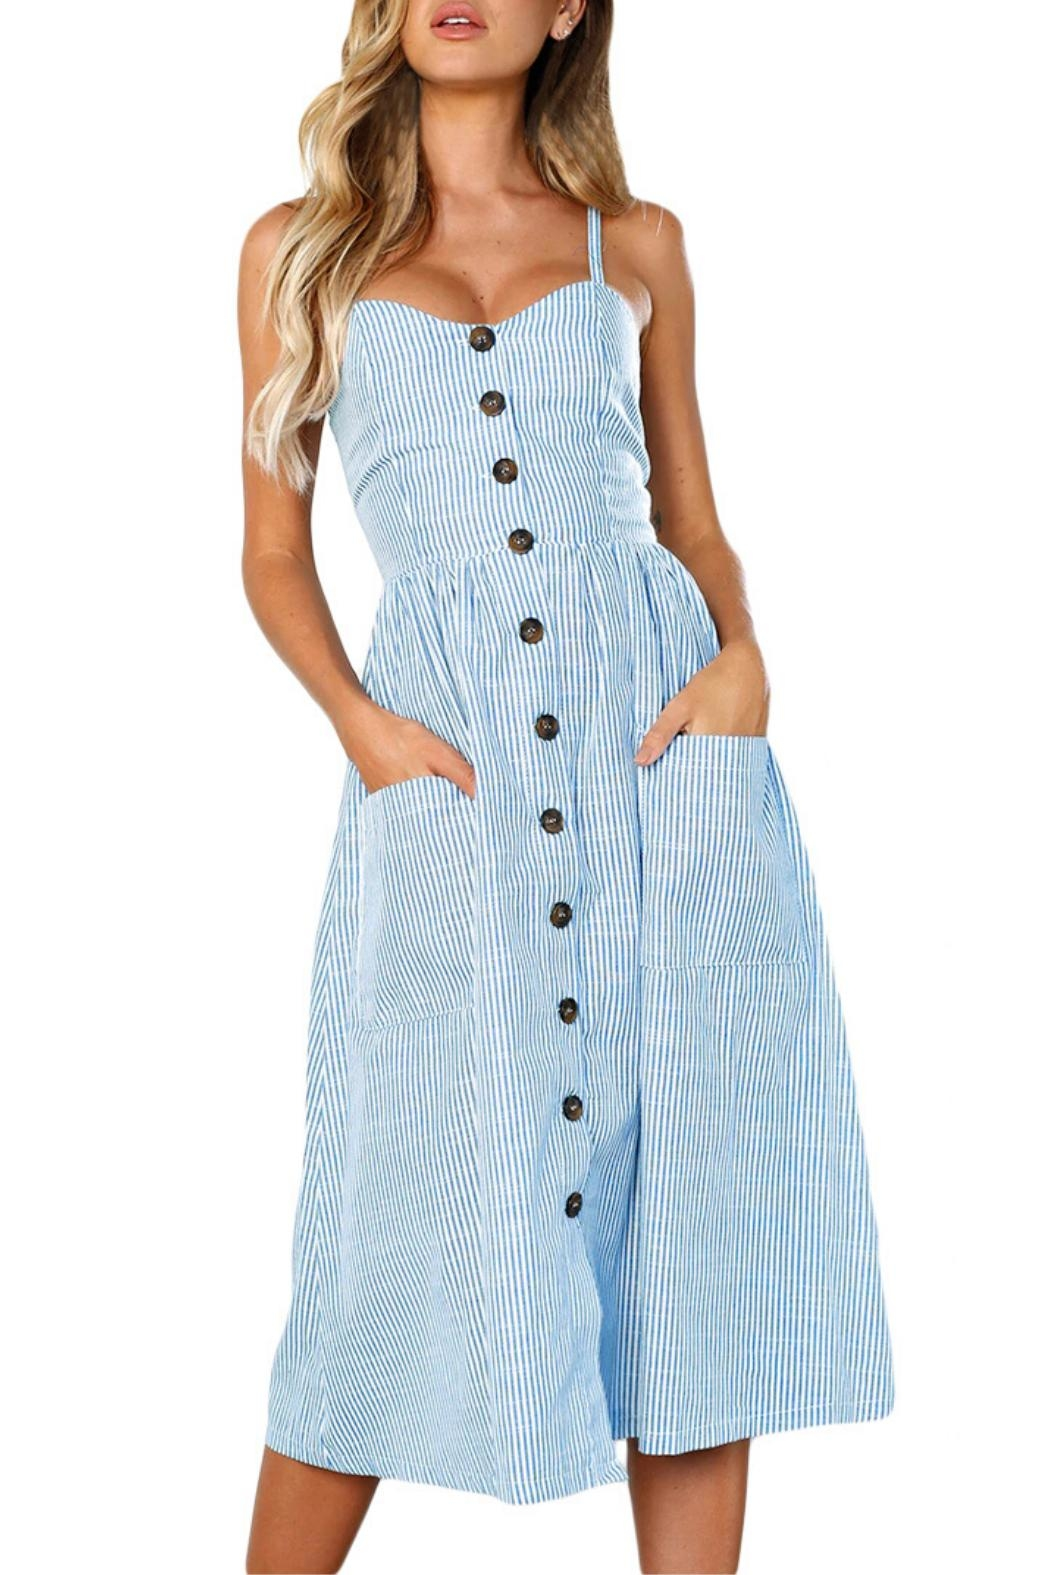 Unbranded Button Down Dress - Main Image